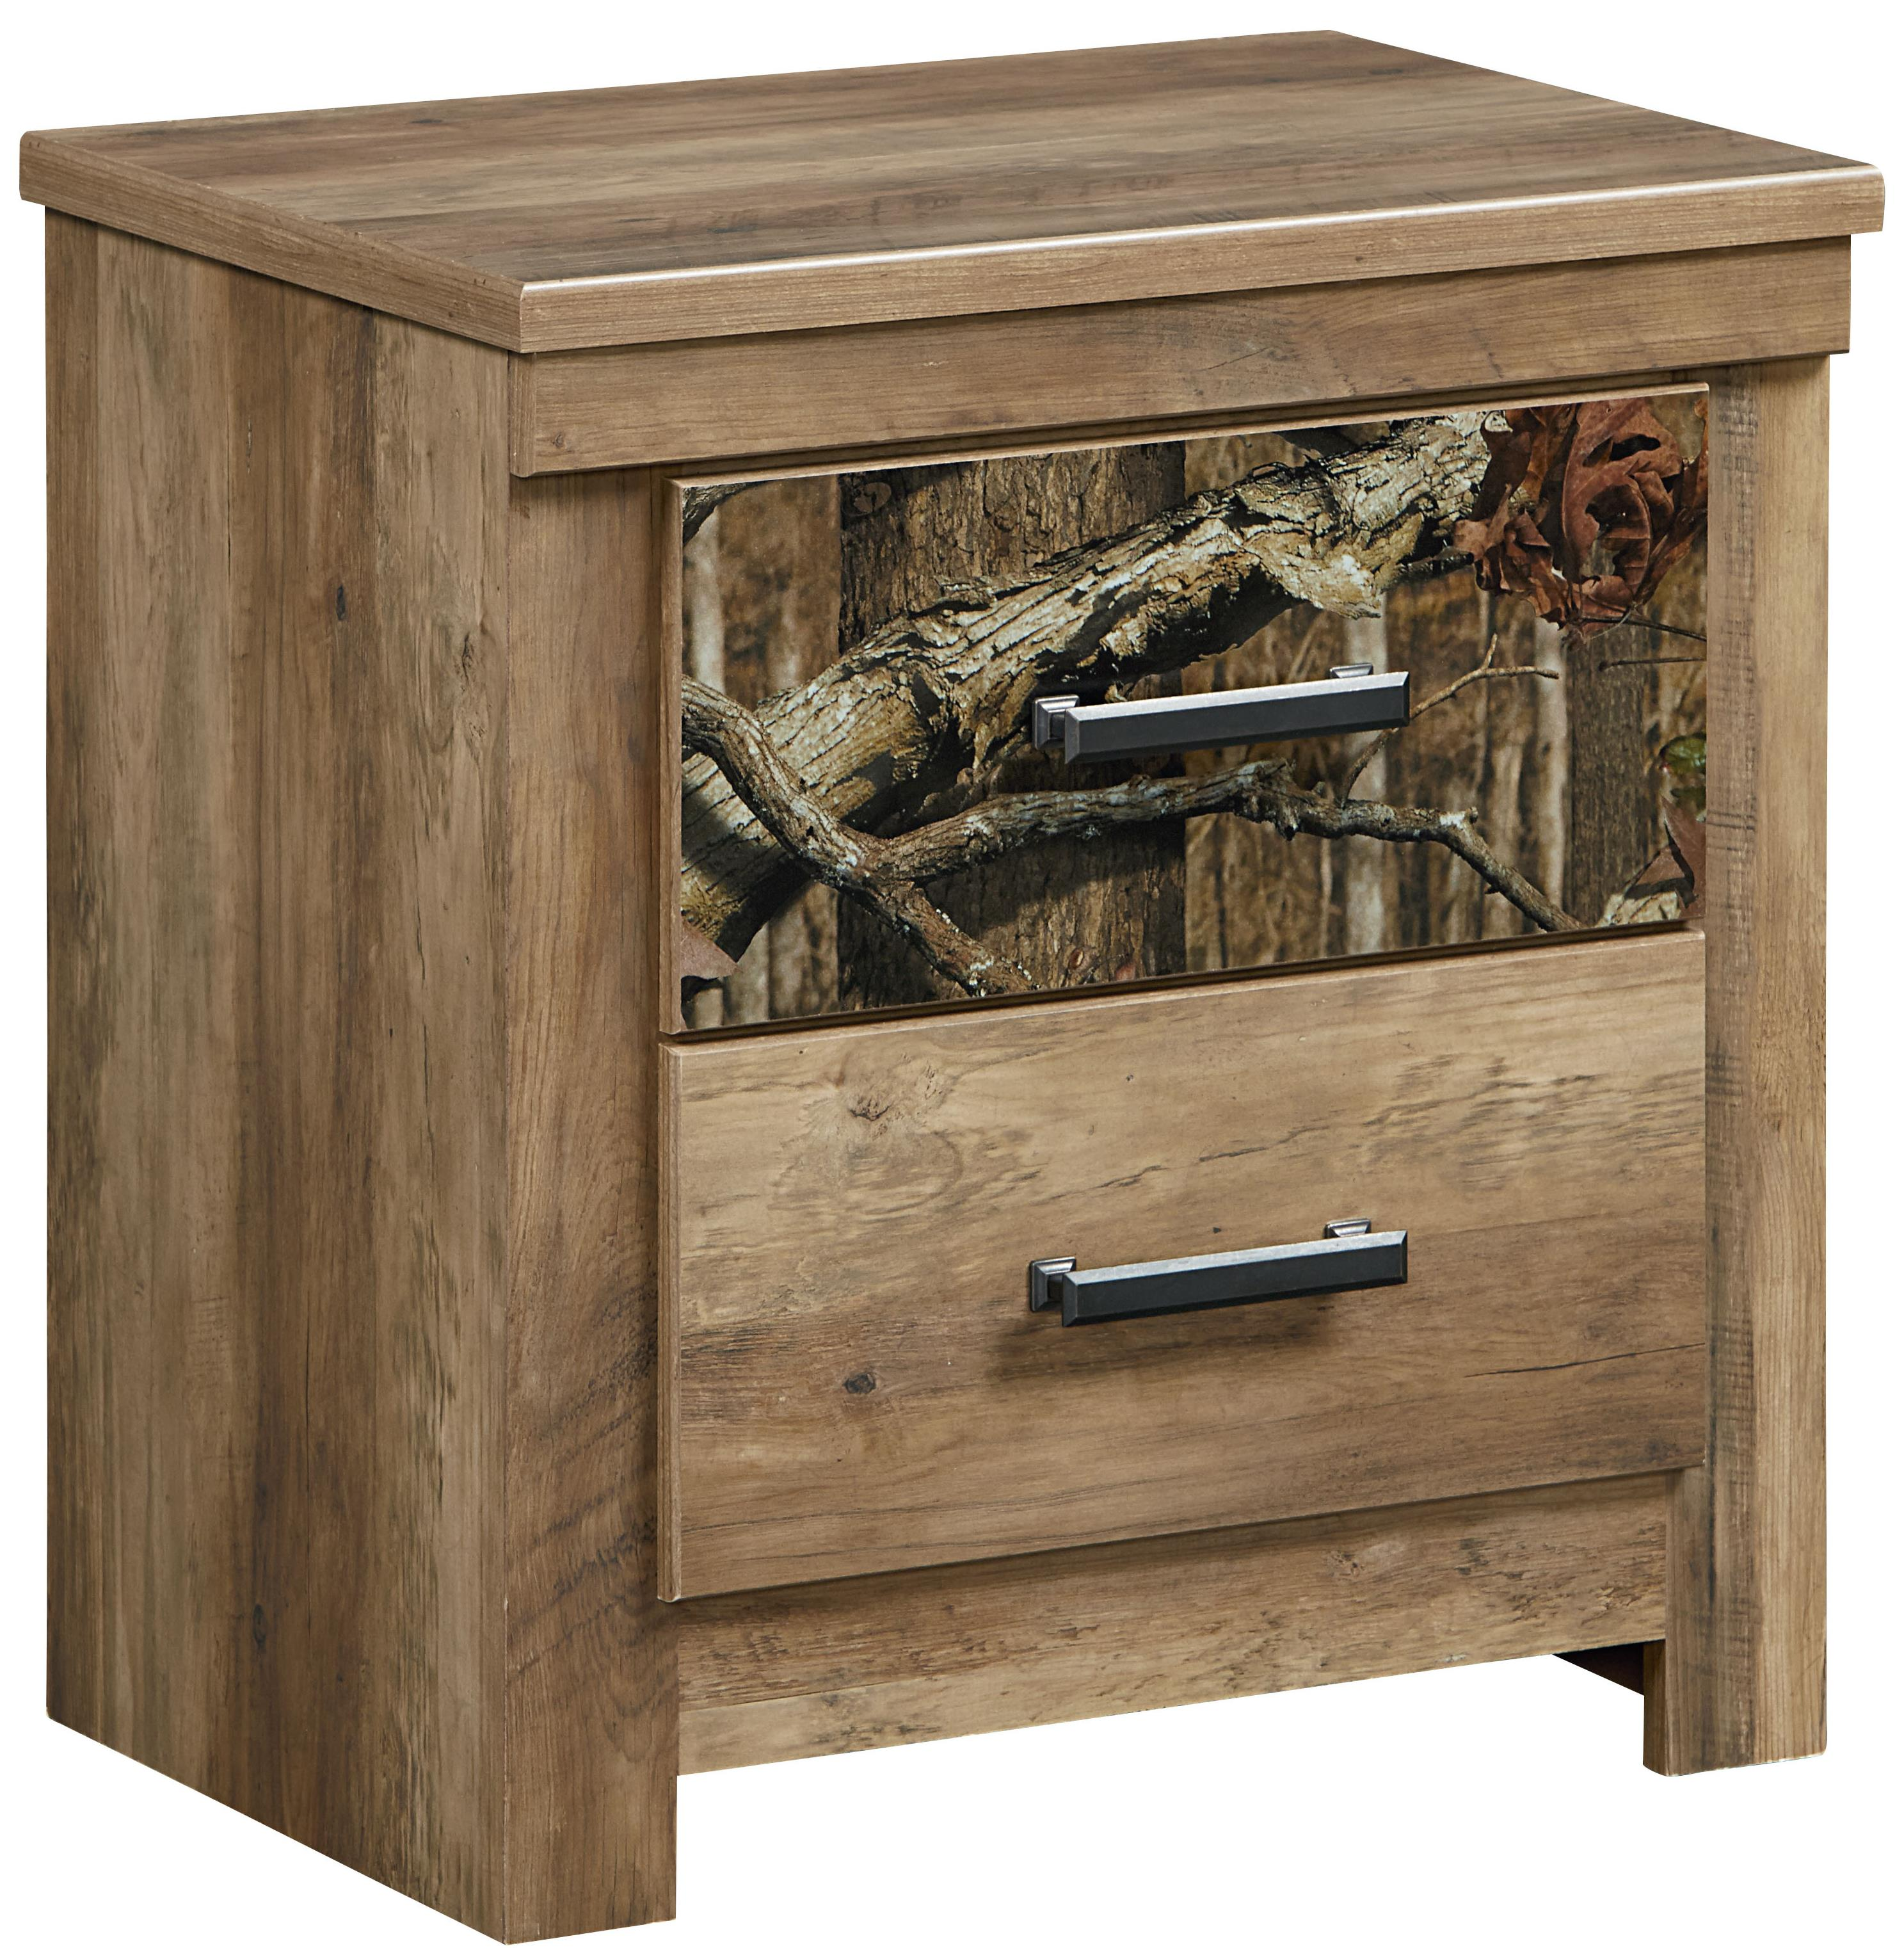 Standard Furniture Habitat Nightstand - Item Number: 55457